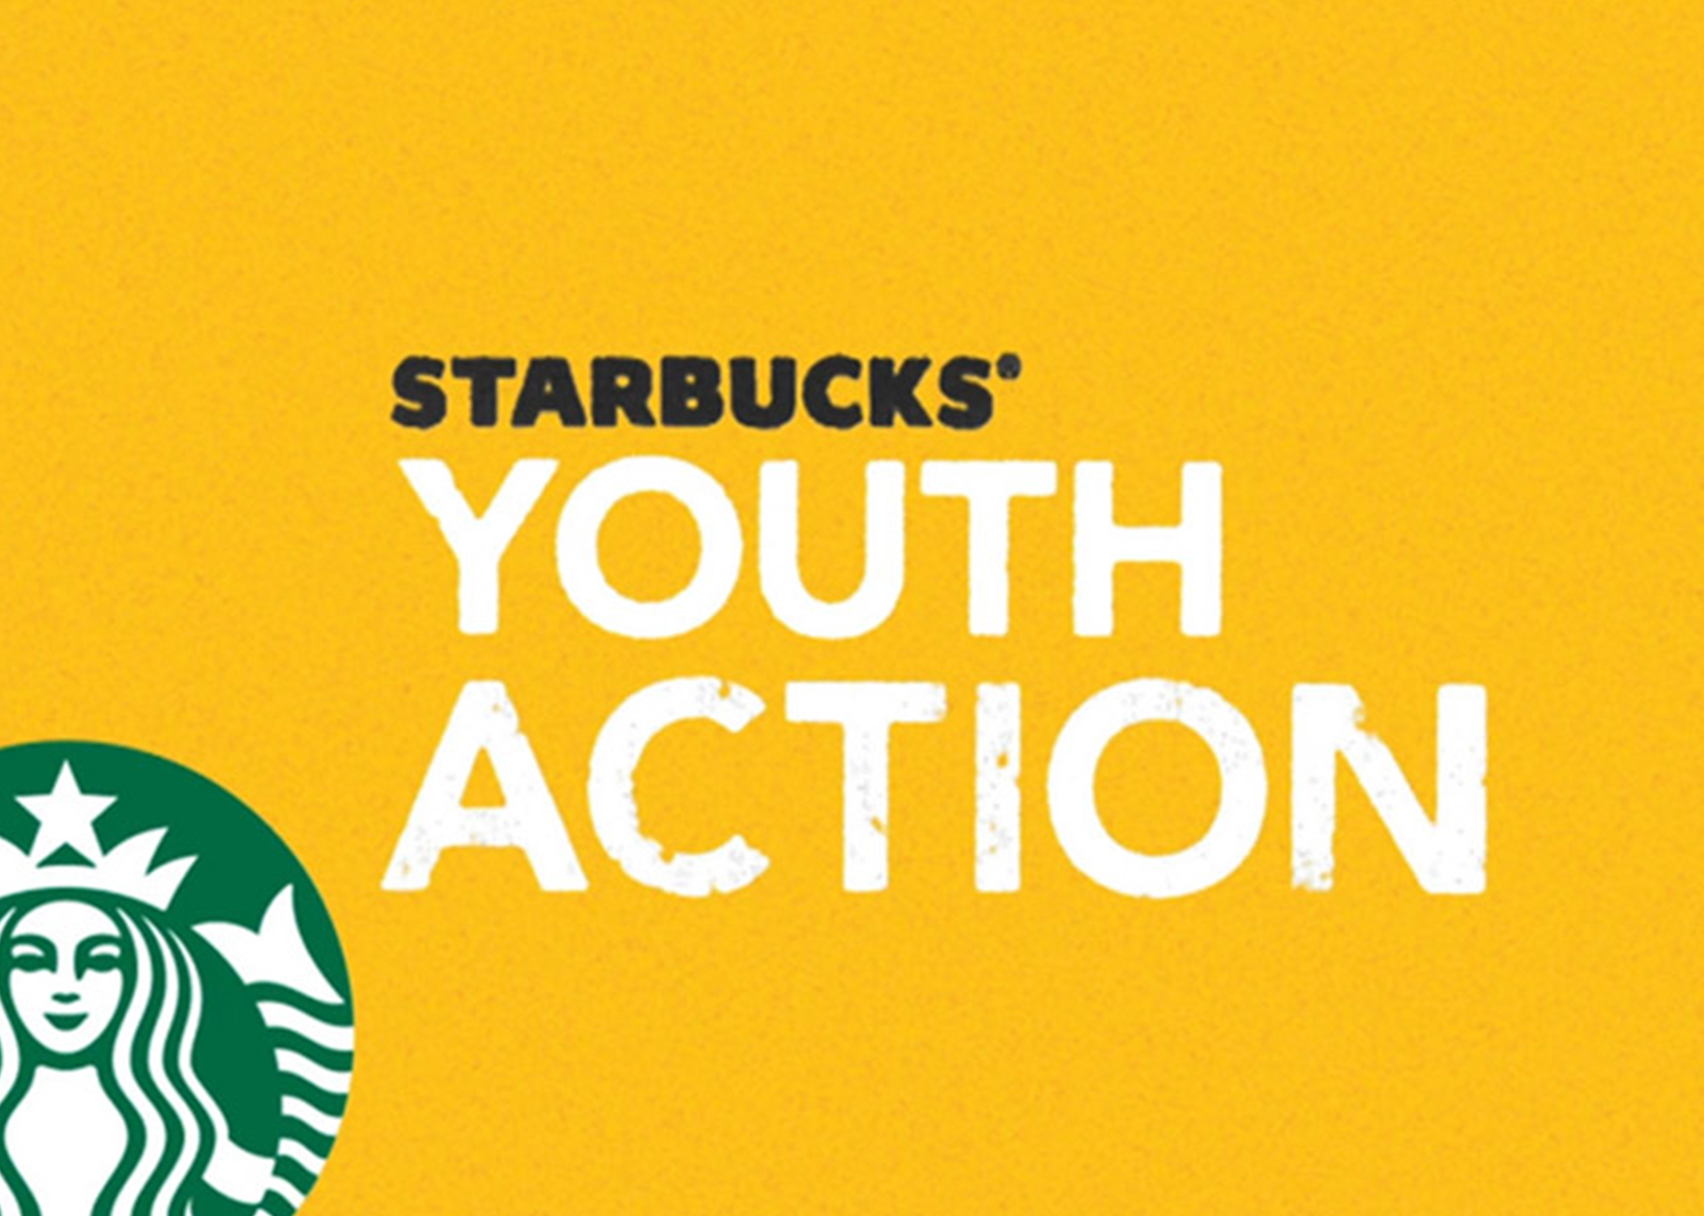 Starbucks Youth Action